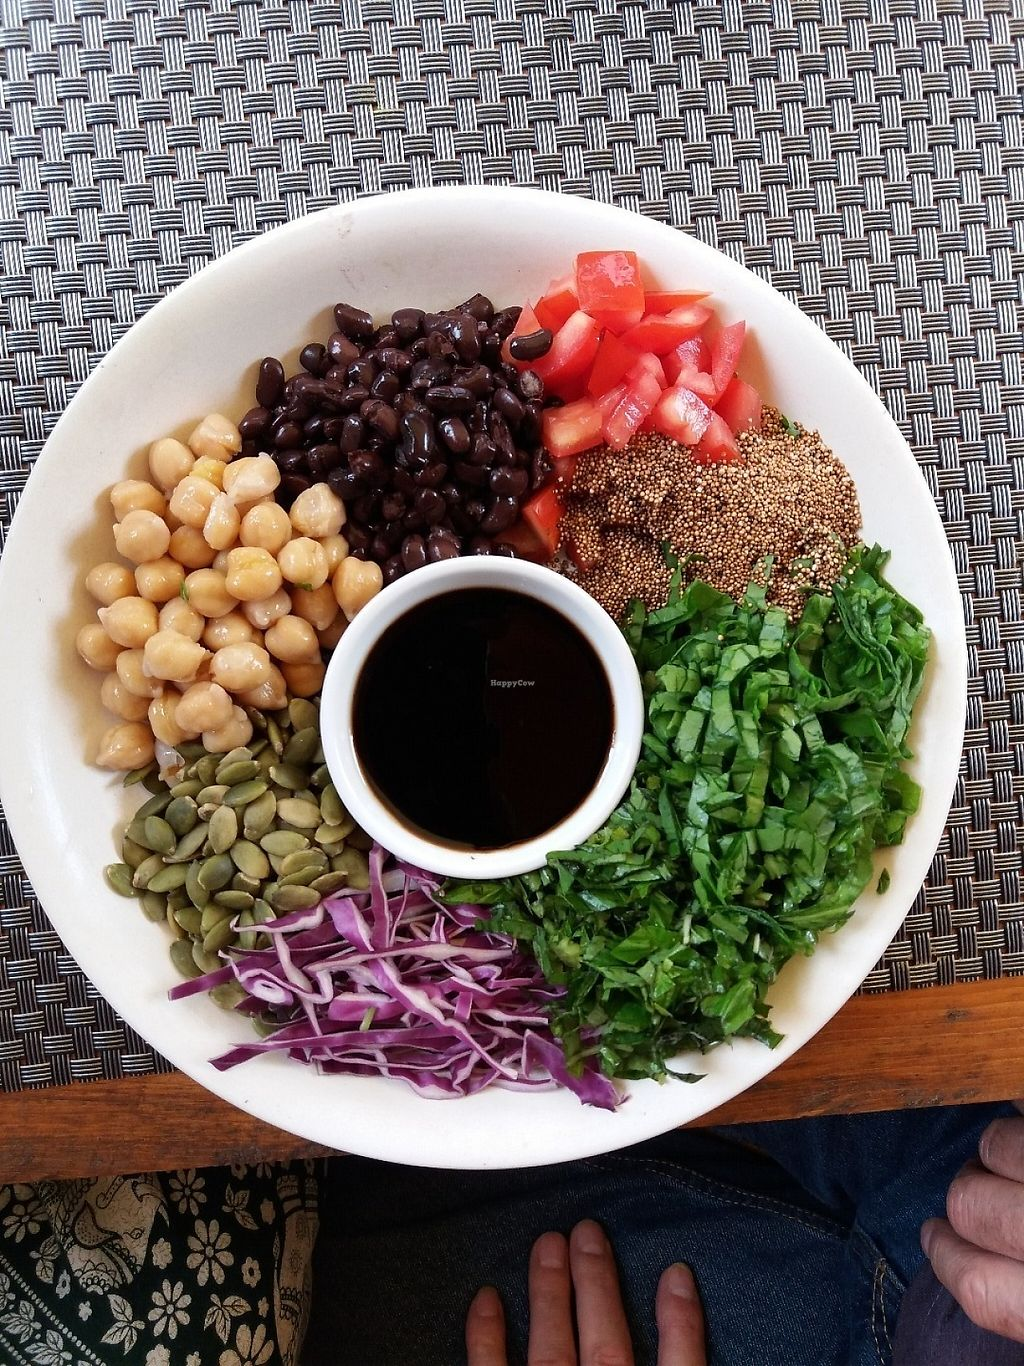 """Photo of Jalus   by <a href=""""/members/profile/veganvirtues"""">veganvirtues</a> <br/>3 Bean salad and 3 shredded salad <br/> May 23, 2017  - <a href='/contact/abuse/image/66258/261702'>Report</a>"""